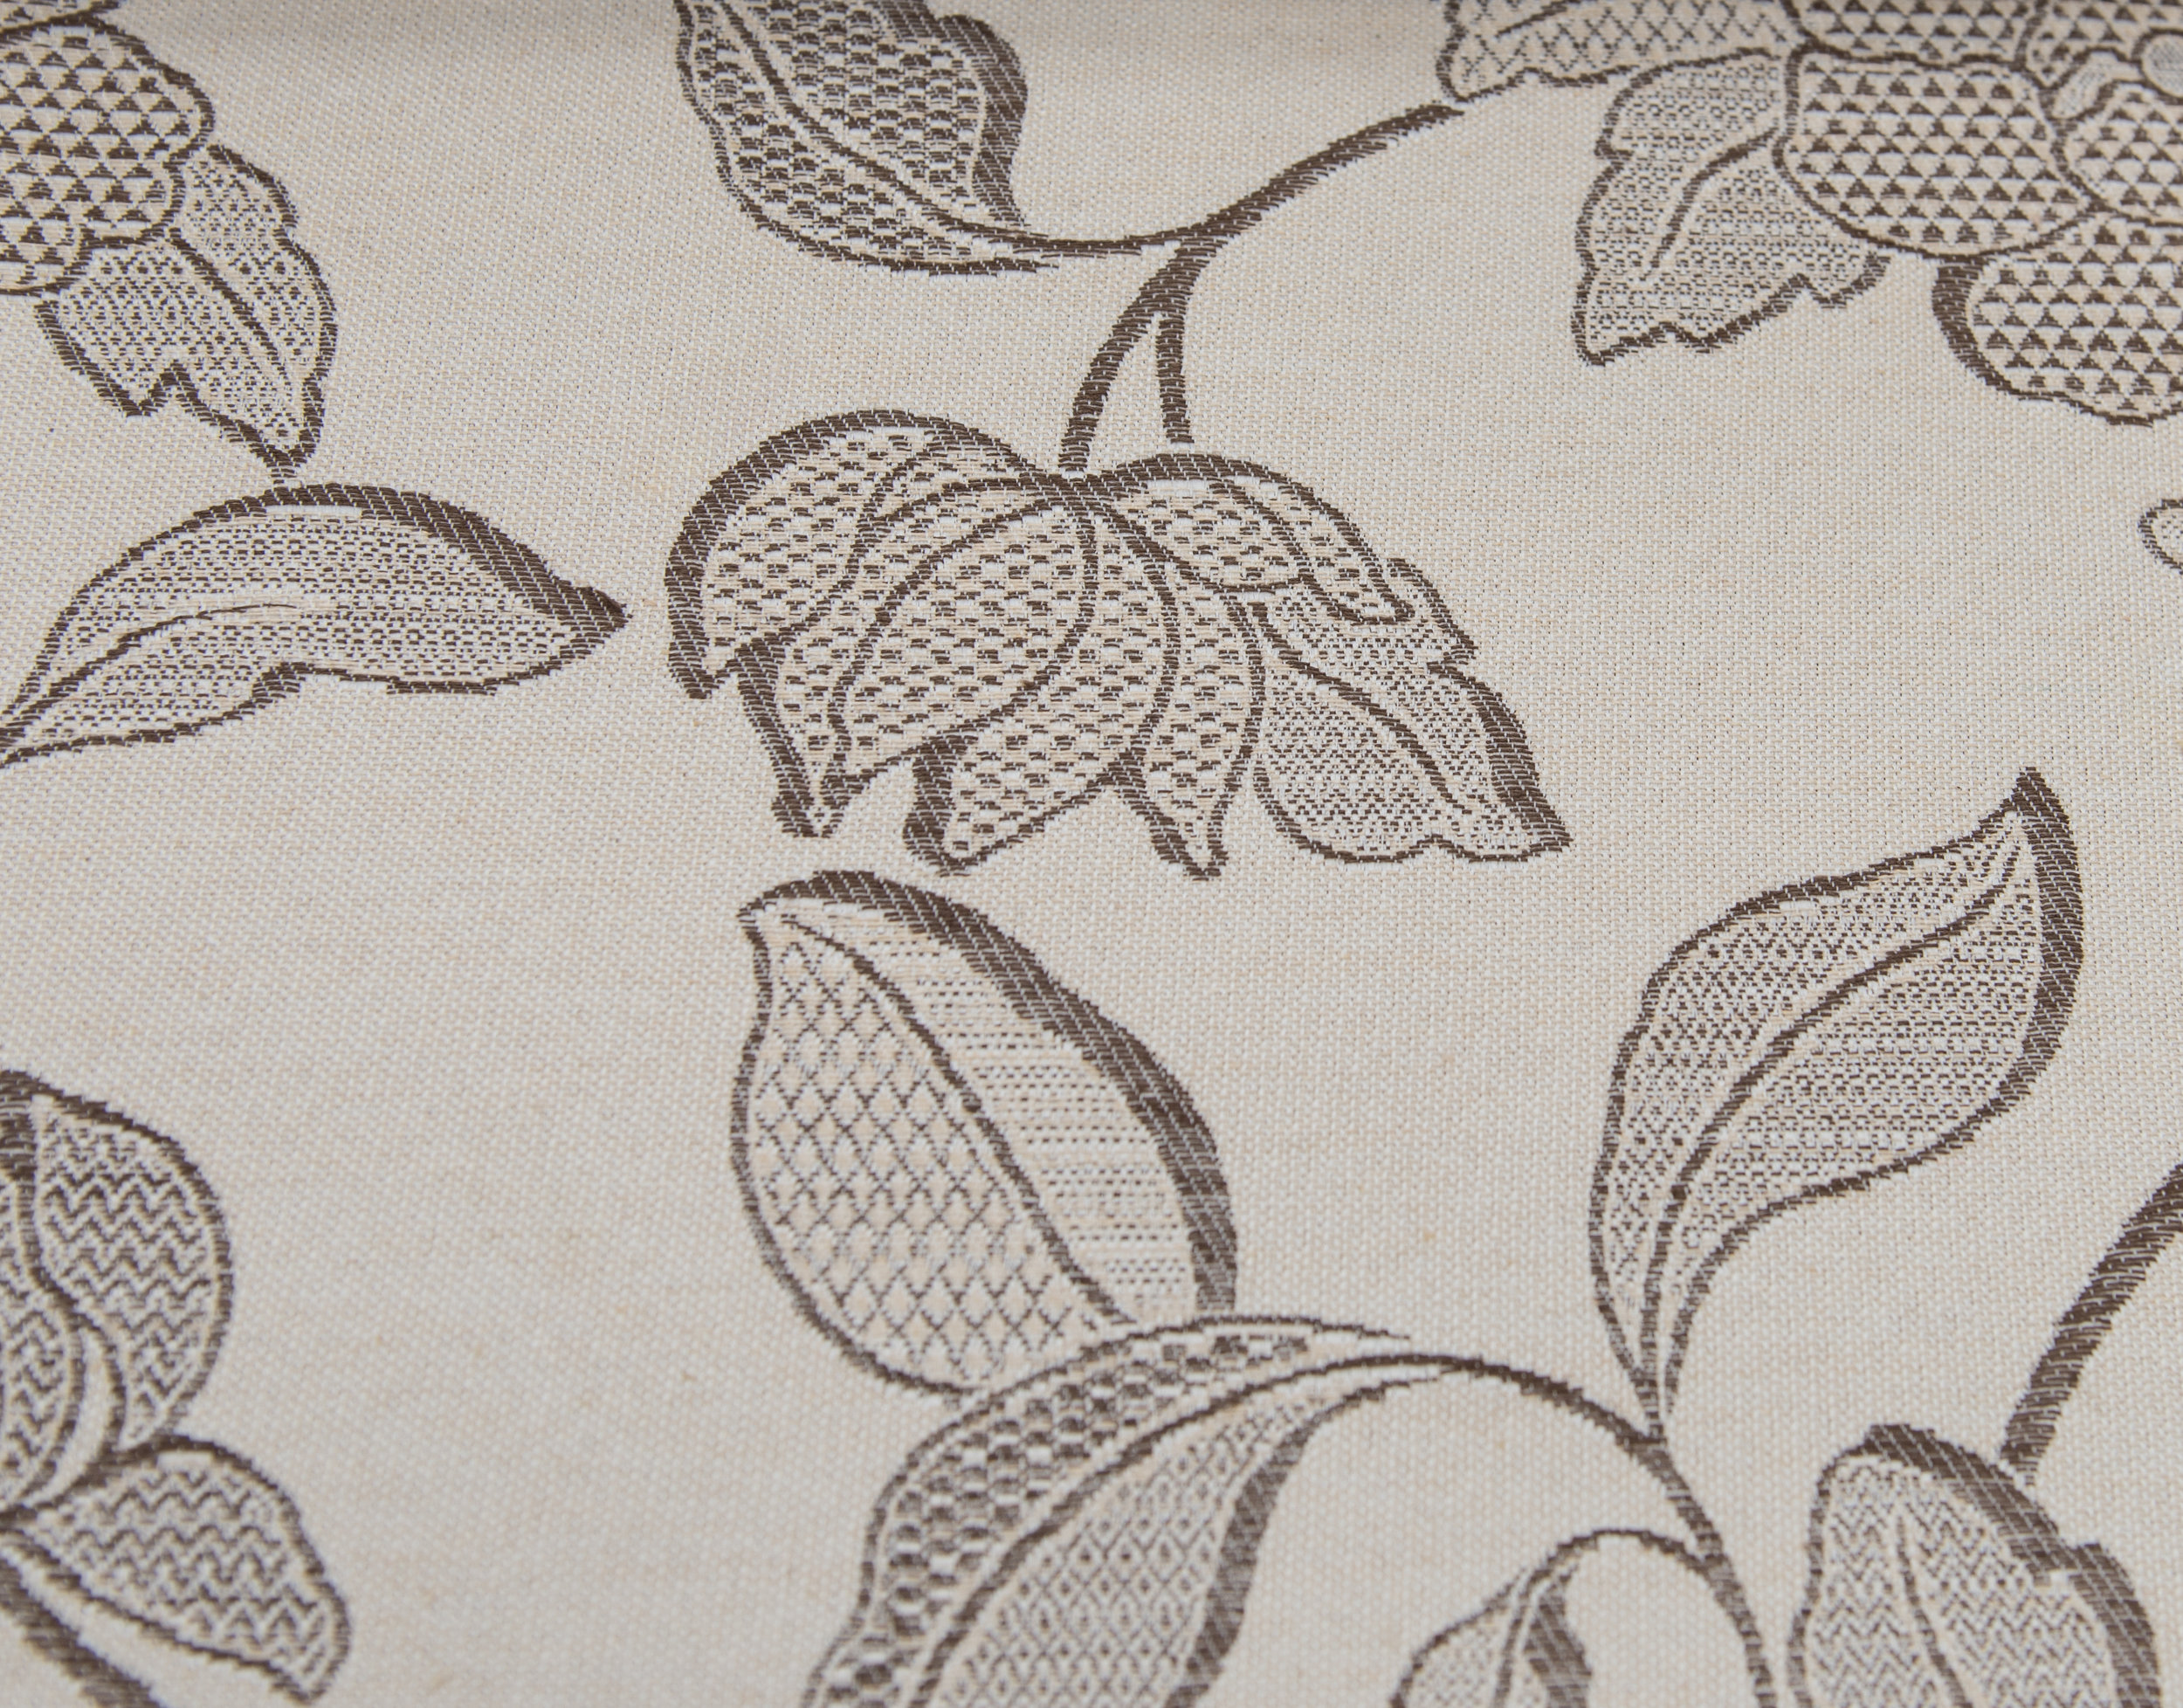 """PACIFIC  BEIGE FLORAL  60%COTTON / 40% POLY  108"""" WIDE   WASHABLE  TABLECLOTH, SLIPCOVER,CURTAIN  MADE IN ITALY          PRICE-   WAS $24    NOW  $8.50 PER YARD."""